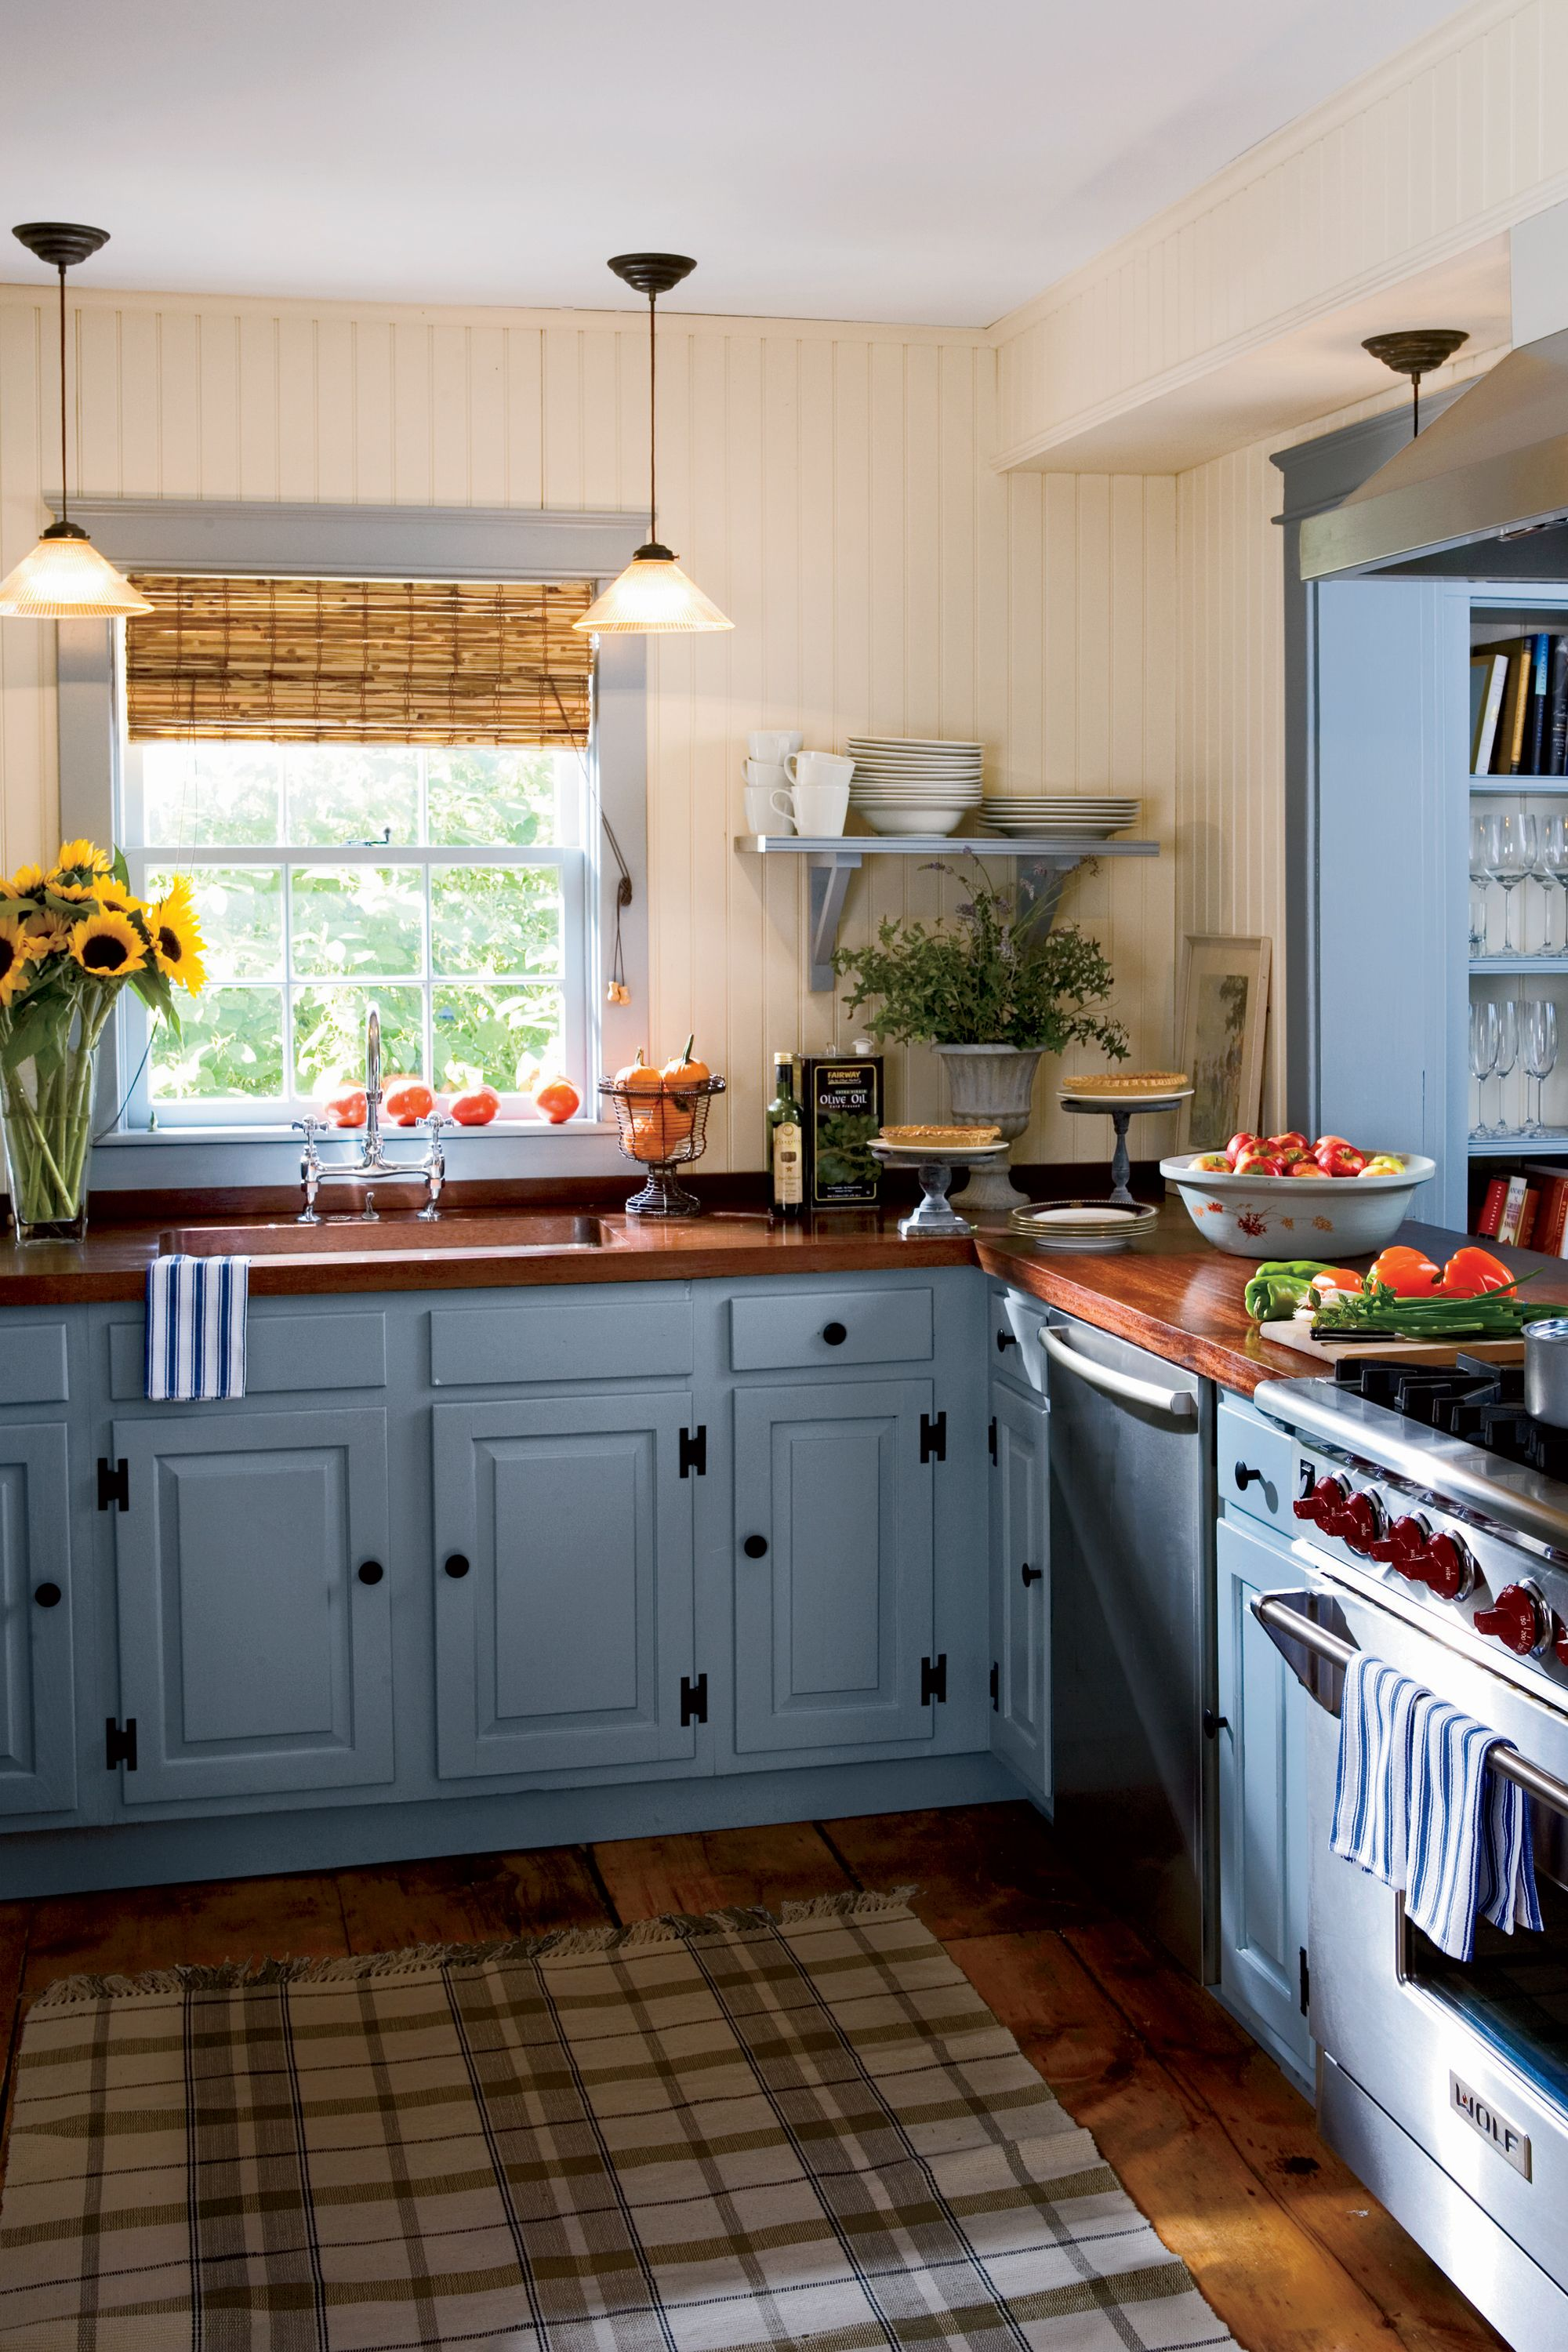 15 Ways To Add Color To Your Kitchen Sag Harbor Open